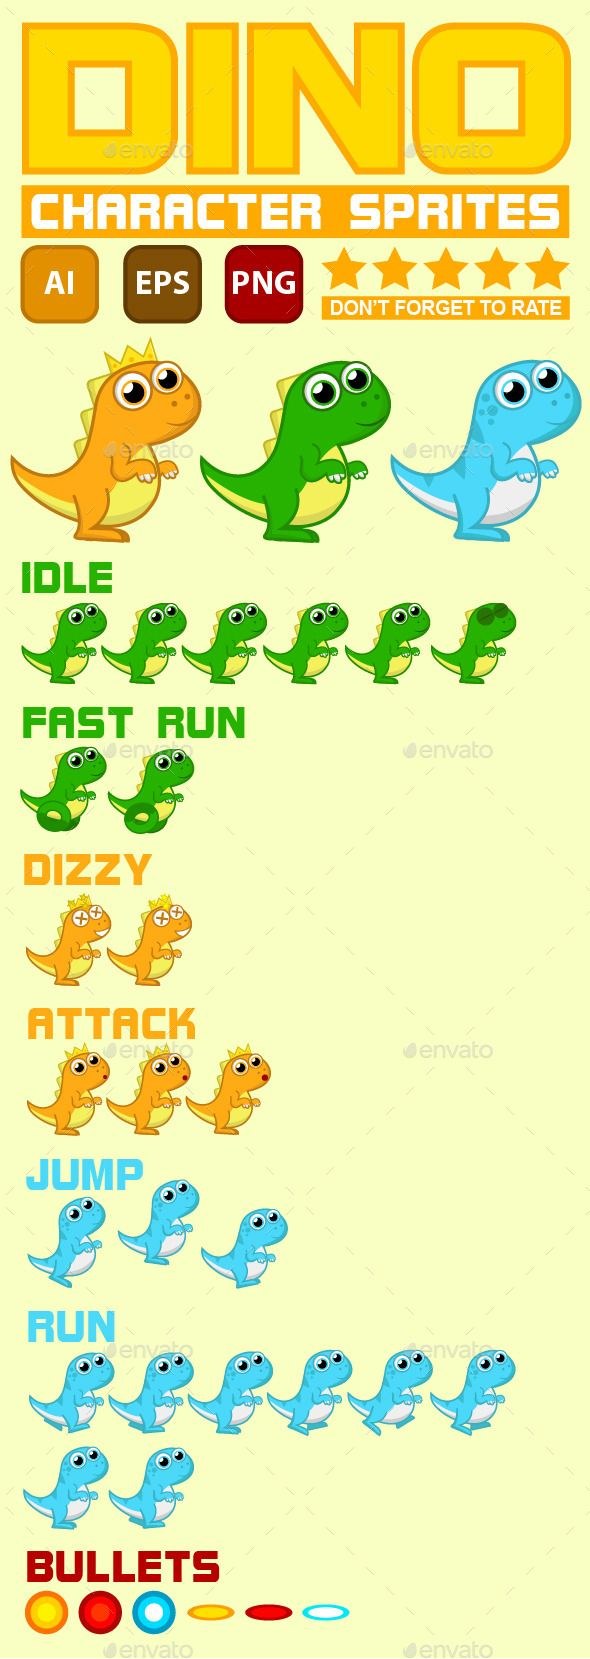 Dino Character Game Sprite is 100 vector and editable  What